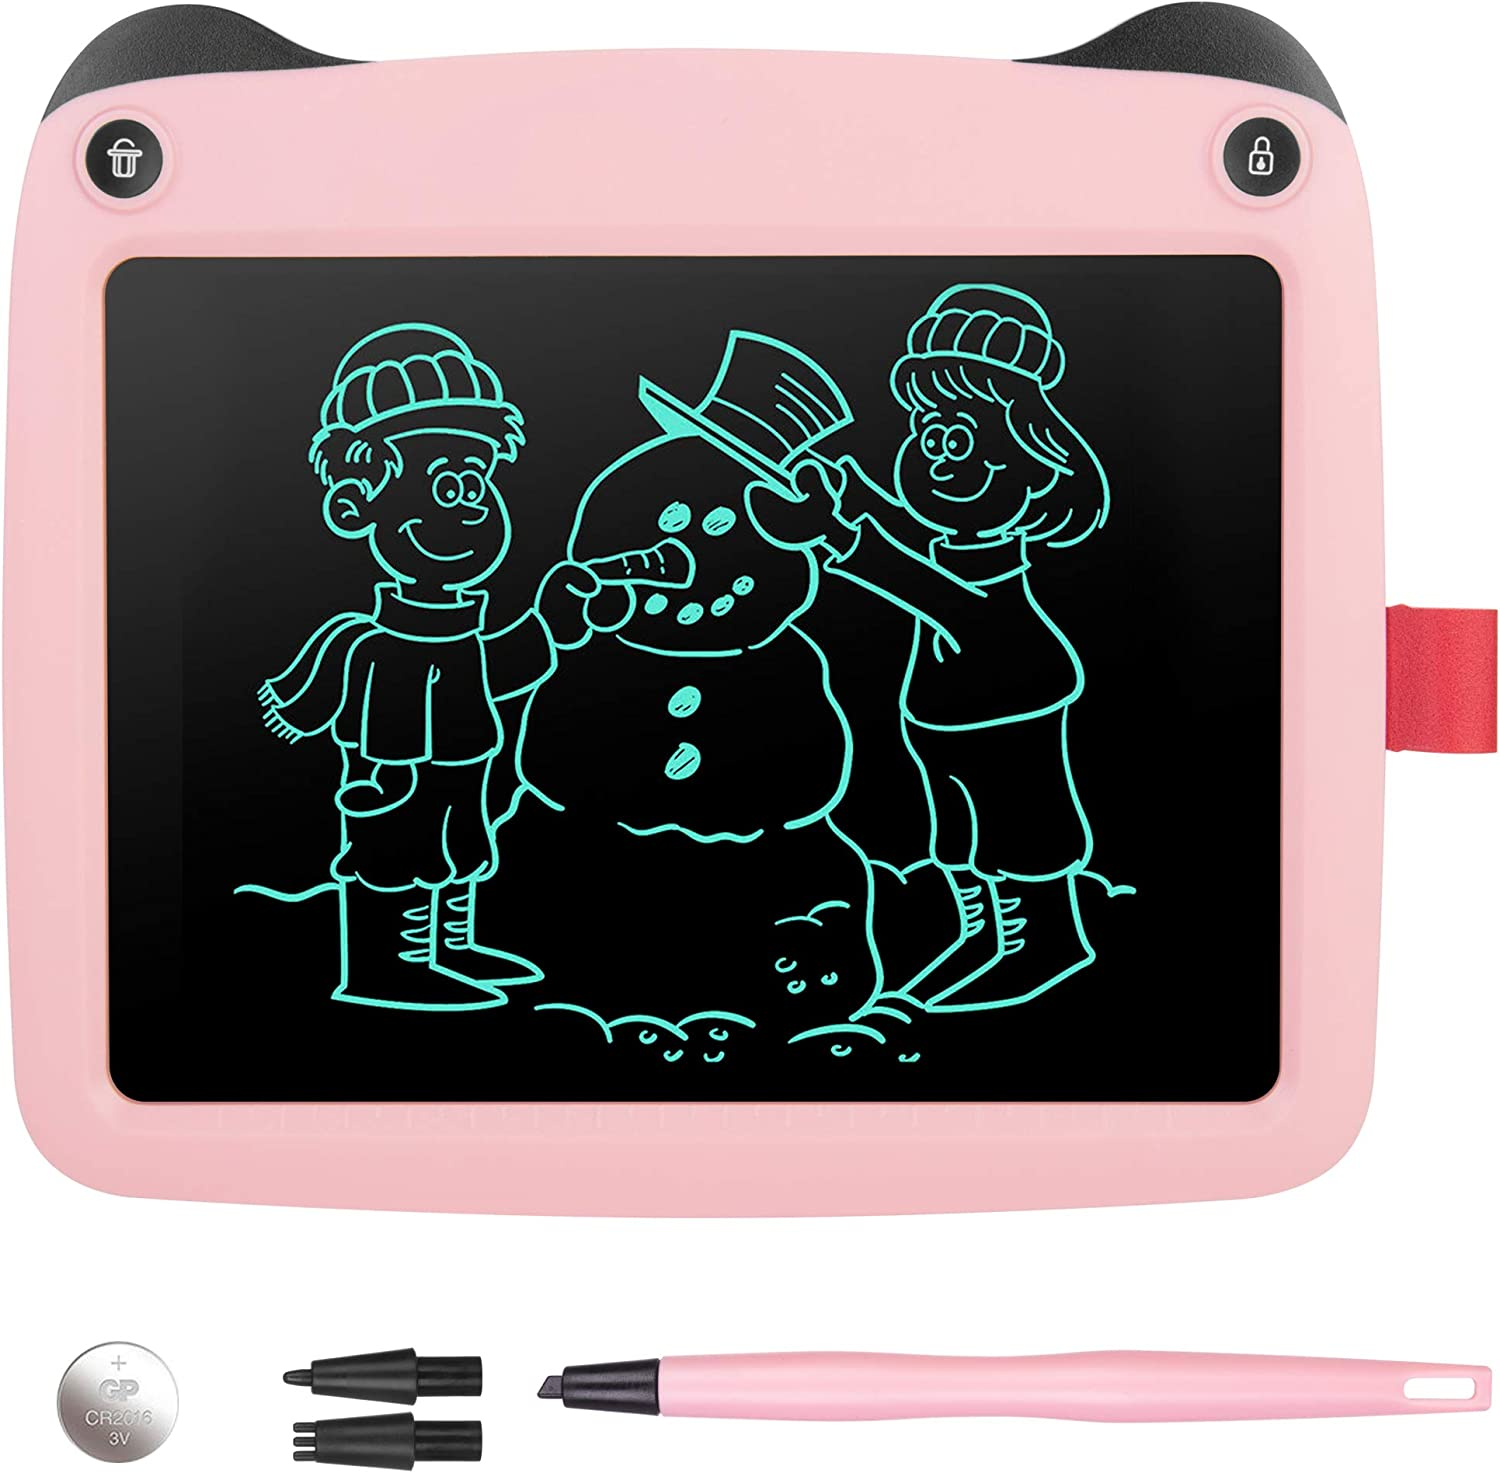 Orange Goodao WP9309 8.5 inch LCD Color Screen Writing Tablet Handwriting Drawing Sketching Graffiti Scribble Doodle Board for Home Office Writing Drawing Color : Pink